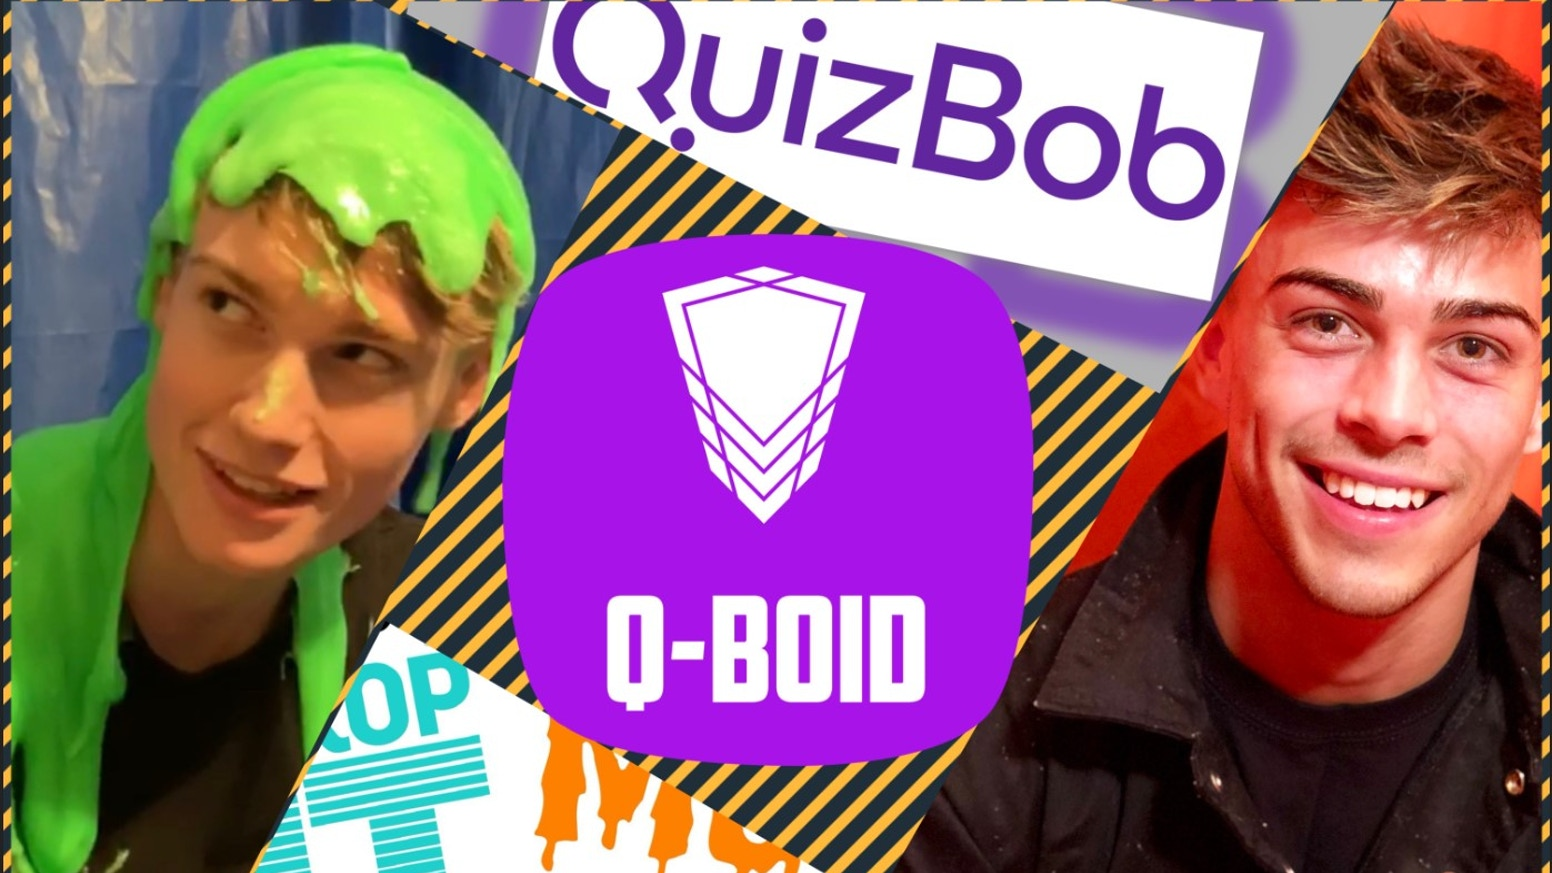 A shiny contraption commonly known as a GUNGE TANK, integral to our QuizBob Quizzes - will be available for backers to experience too!